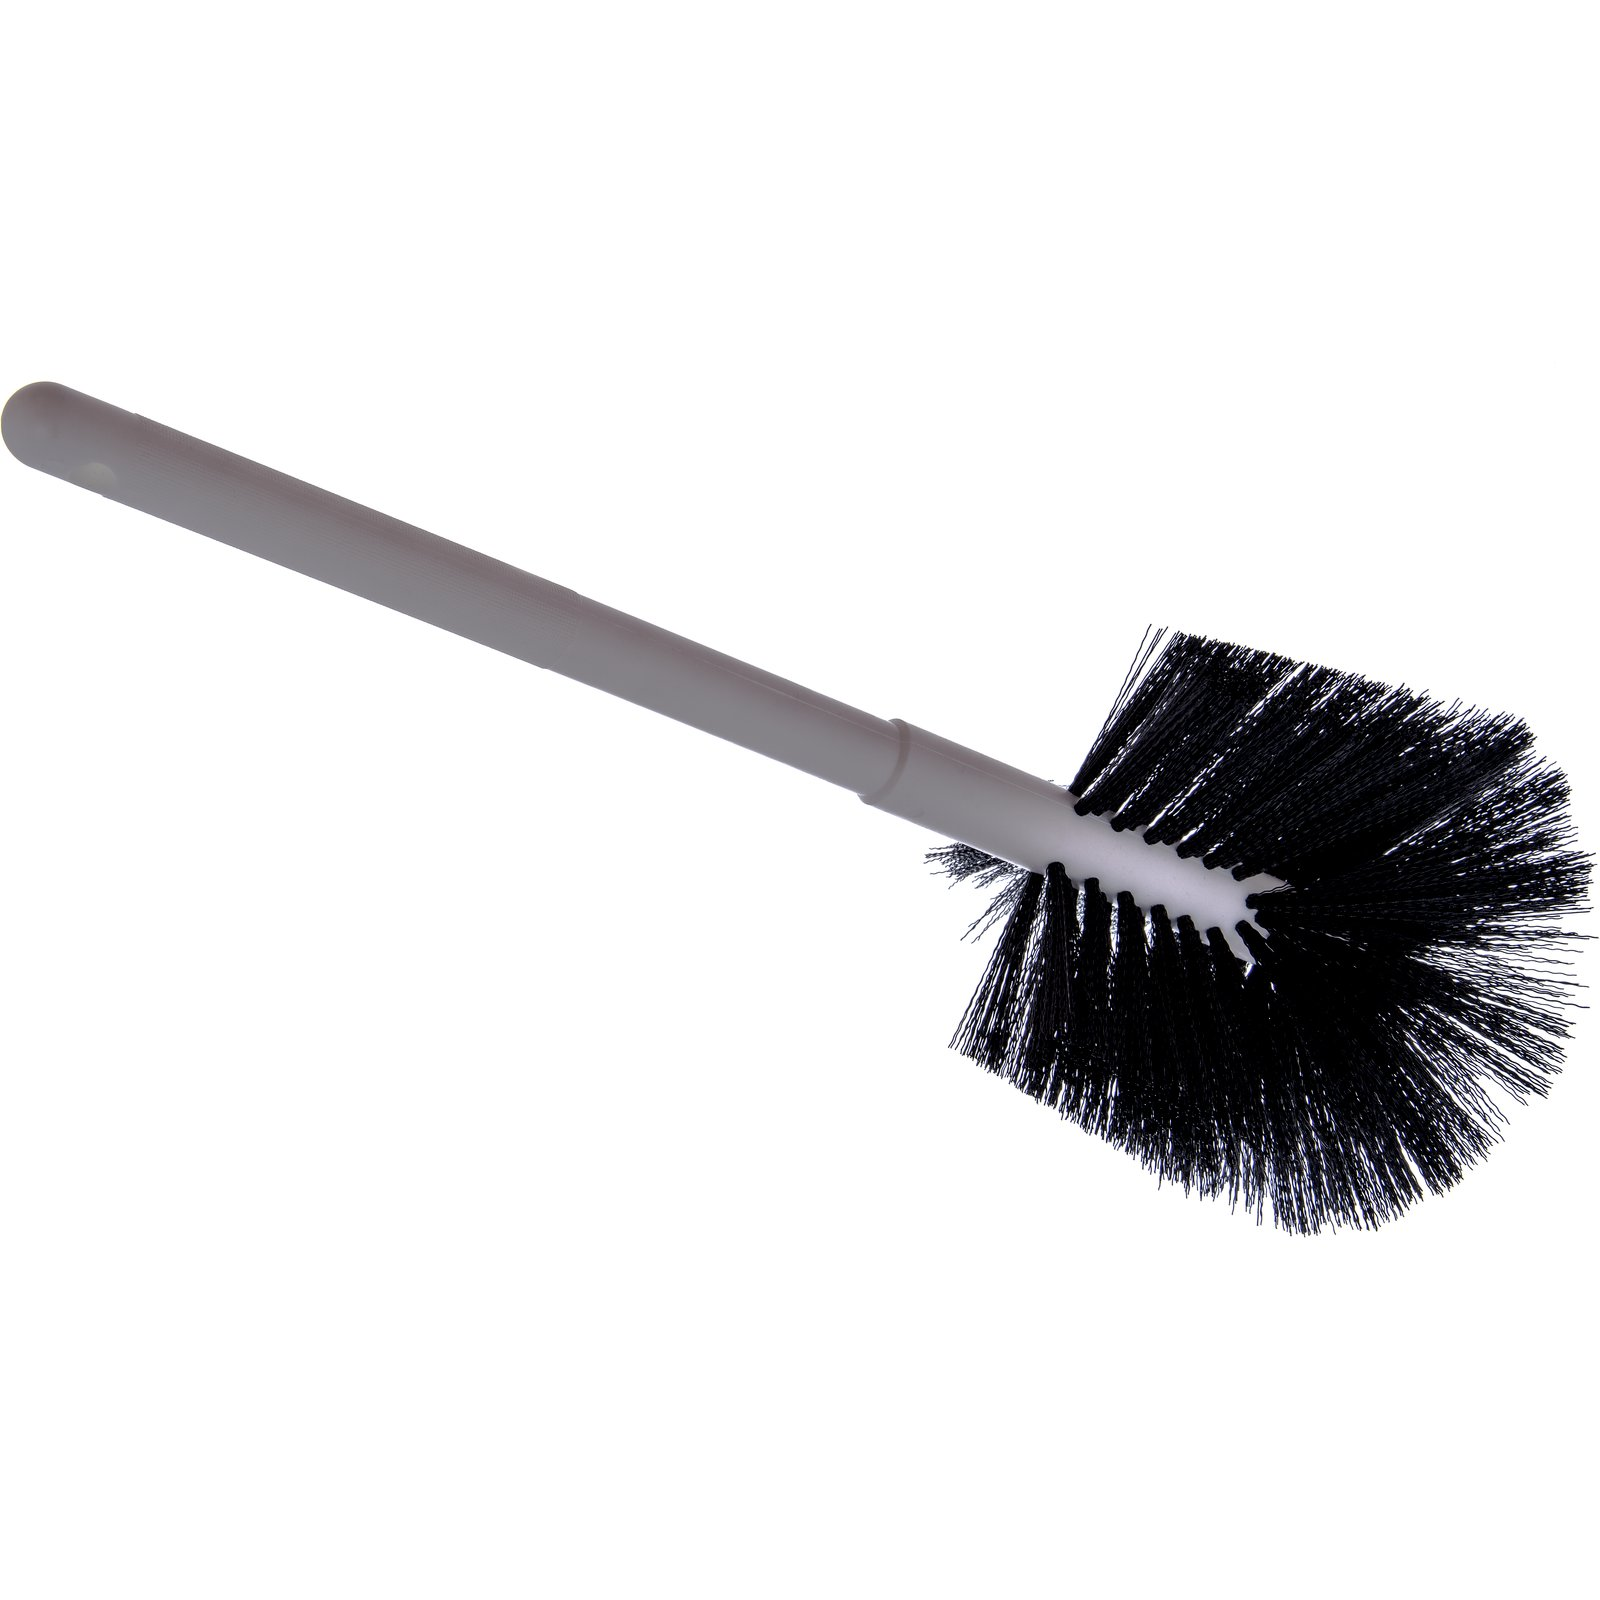 4002500 Sparta Coffee Decanter Brush With Soft Polyester Bristles 16 Carlisle Foodservice Products